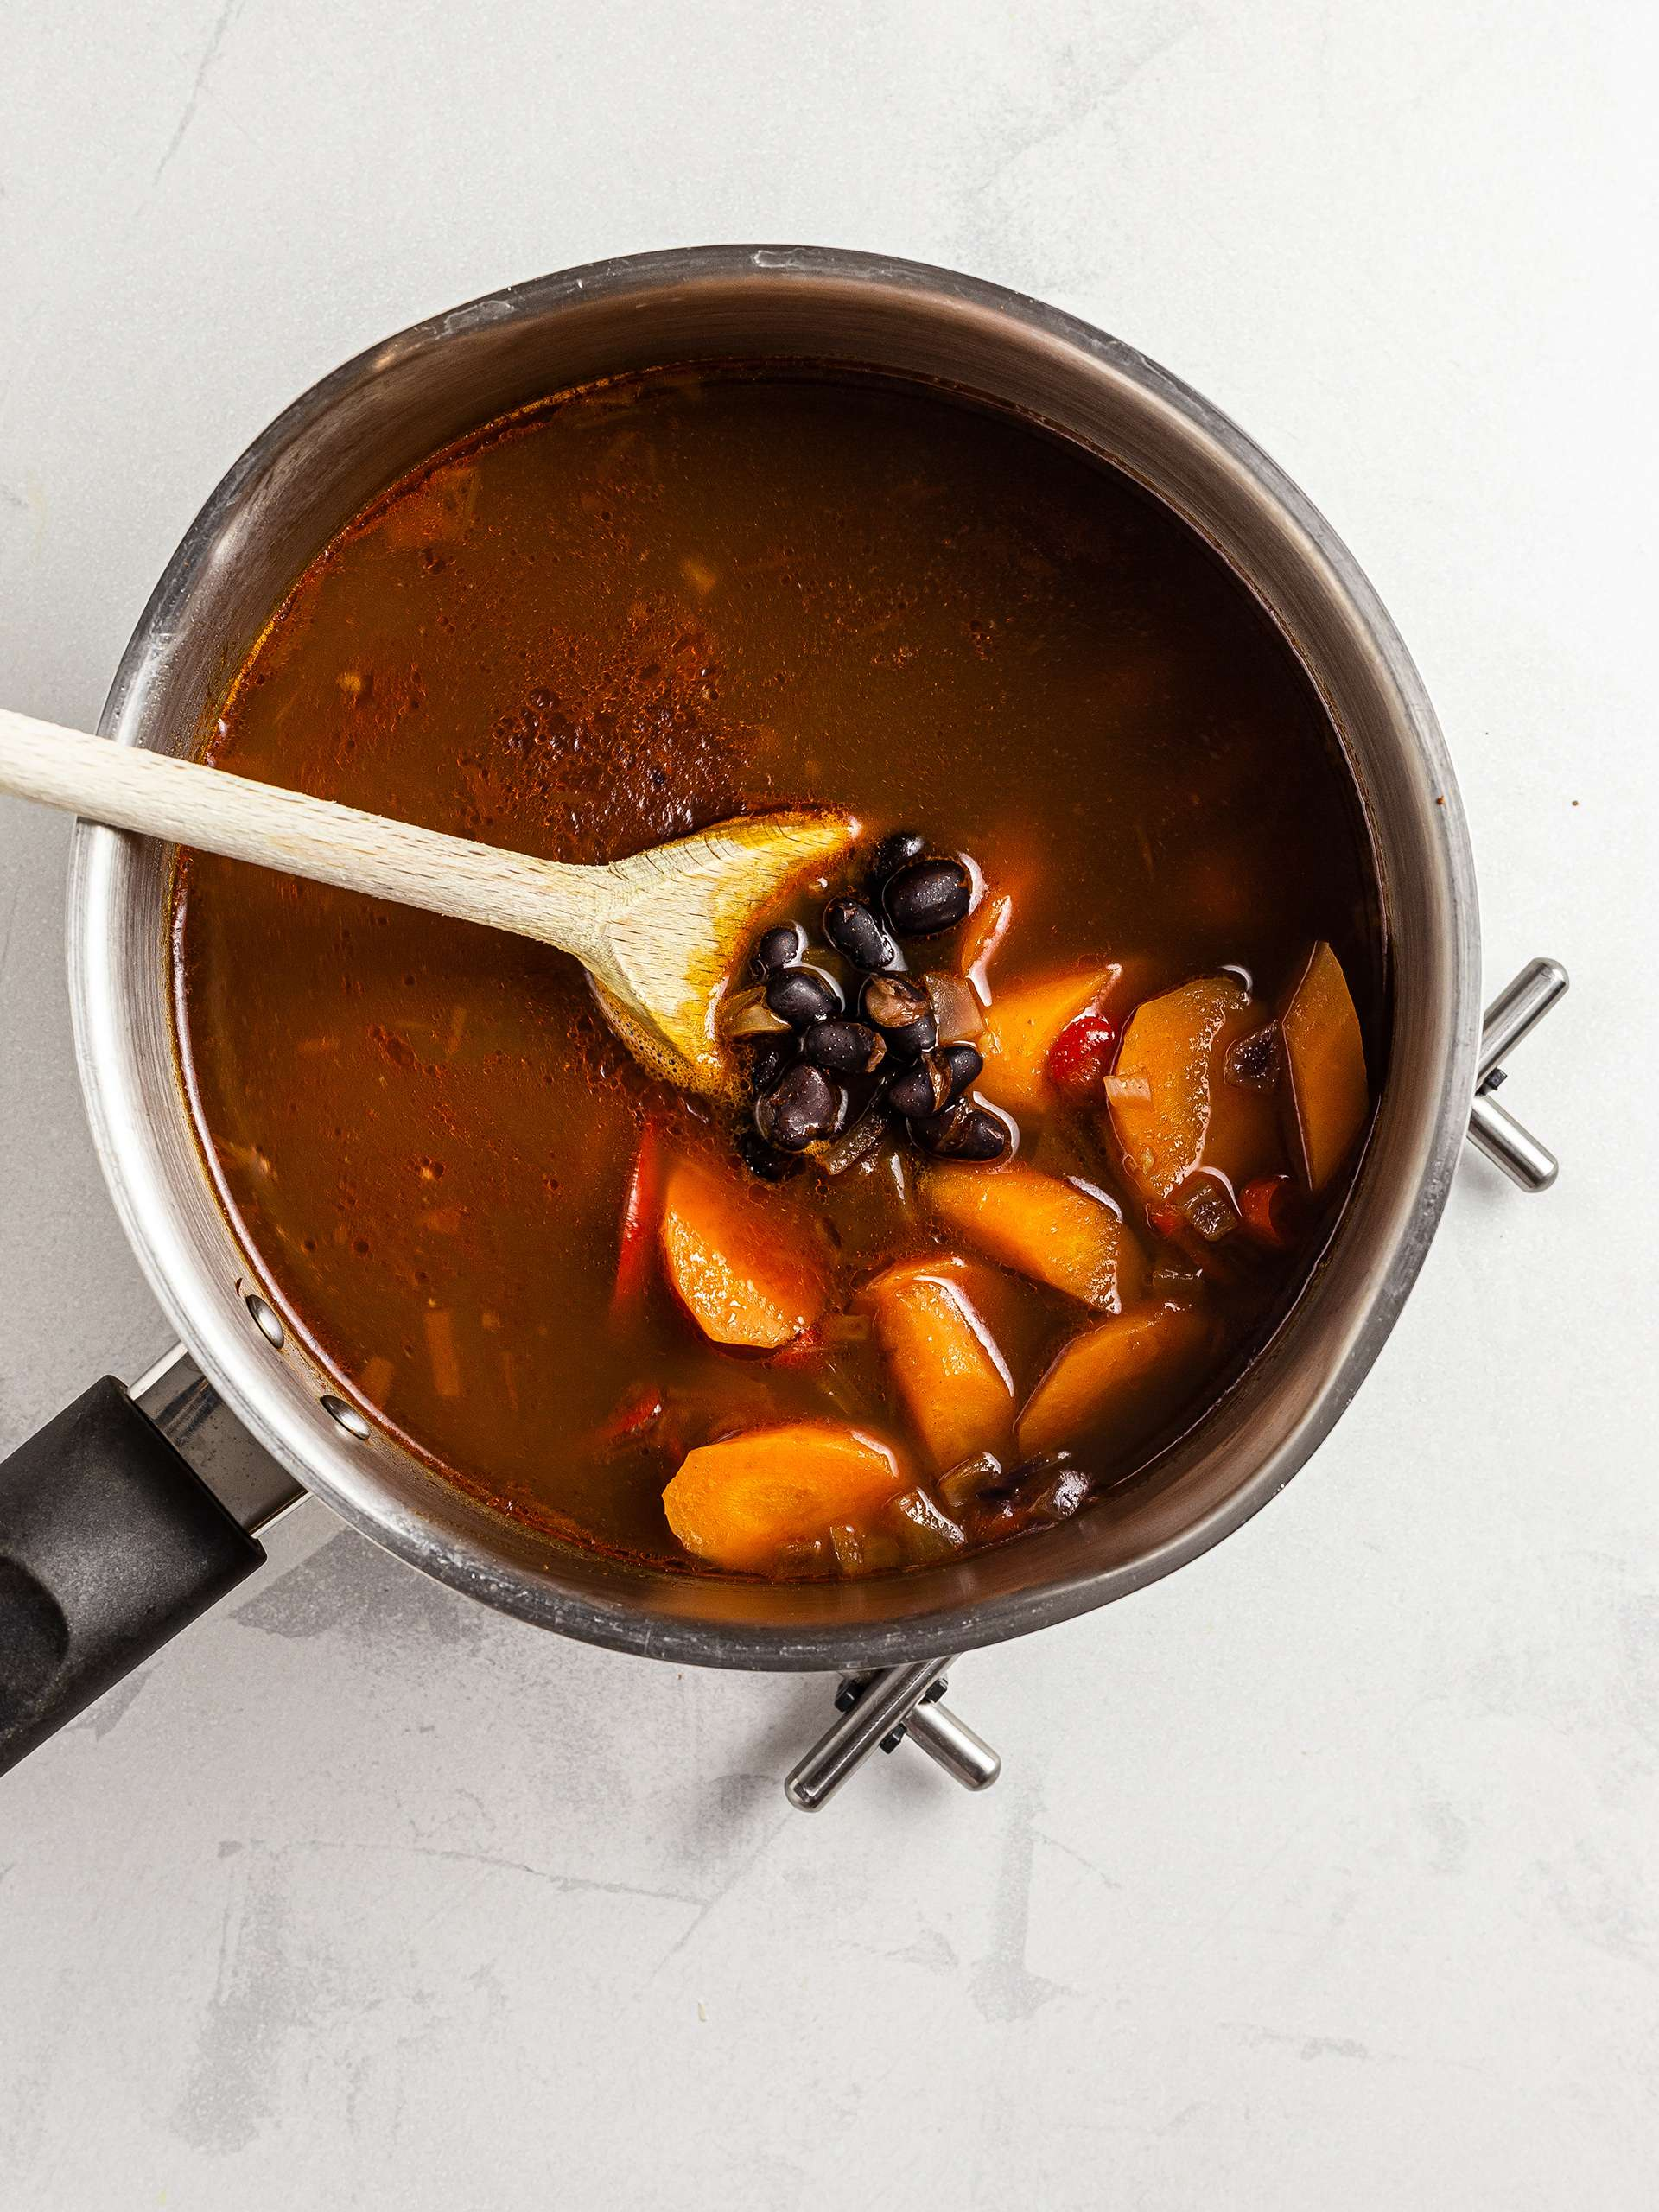 Black beans and carrot stew in a pot